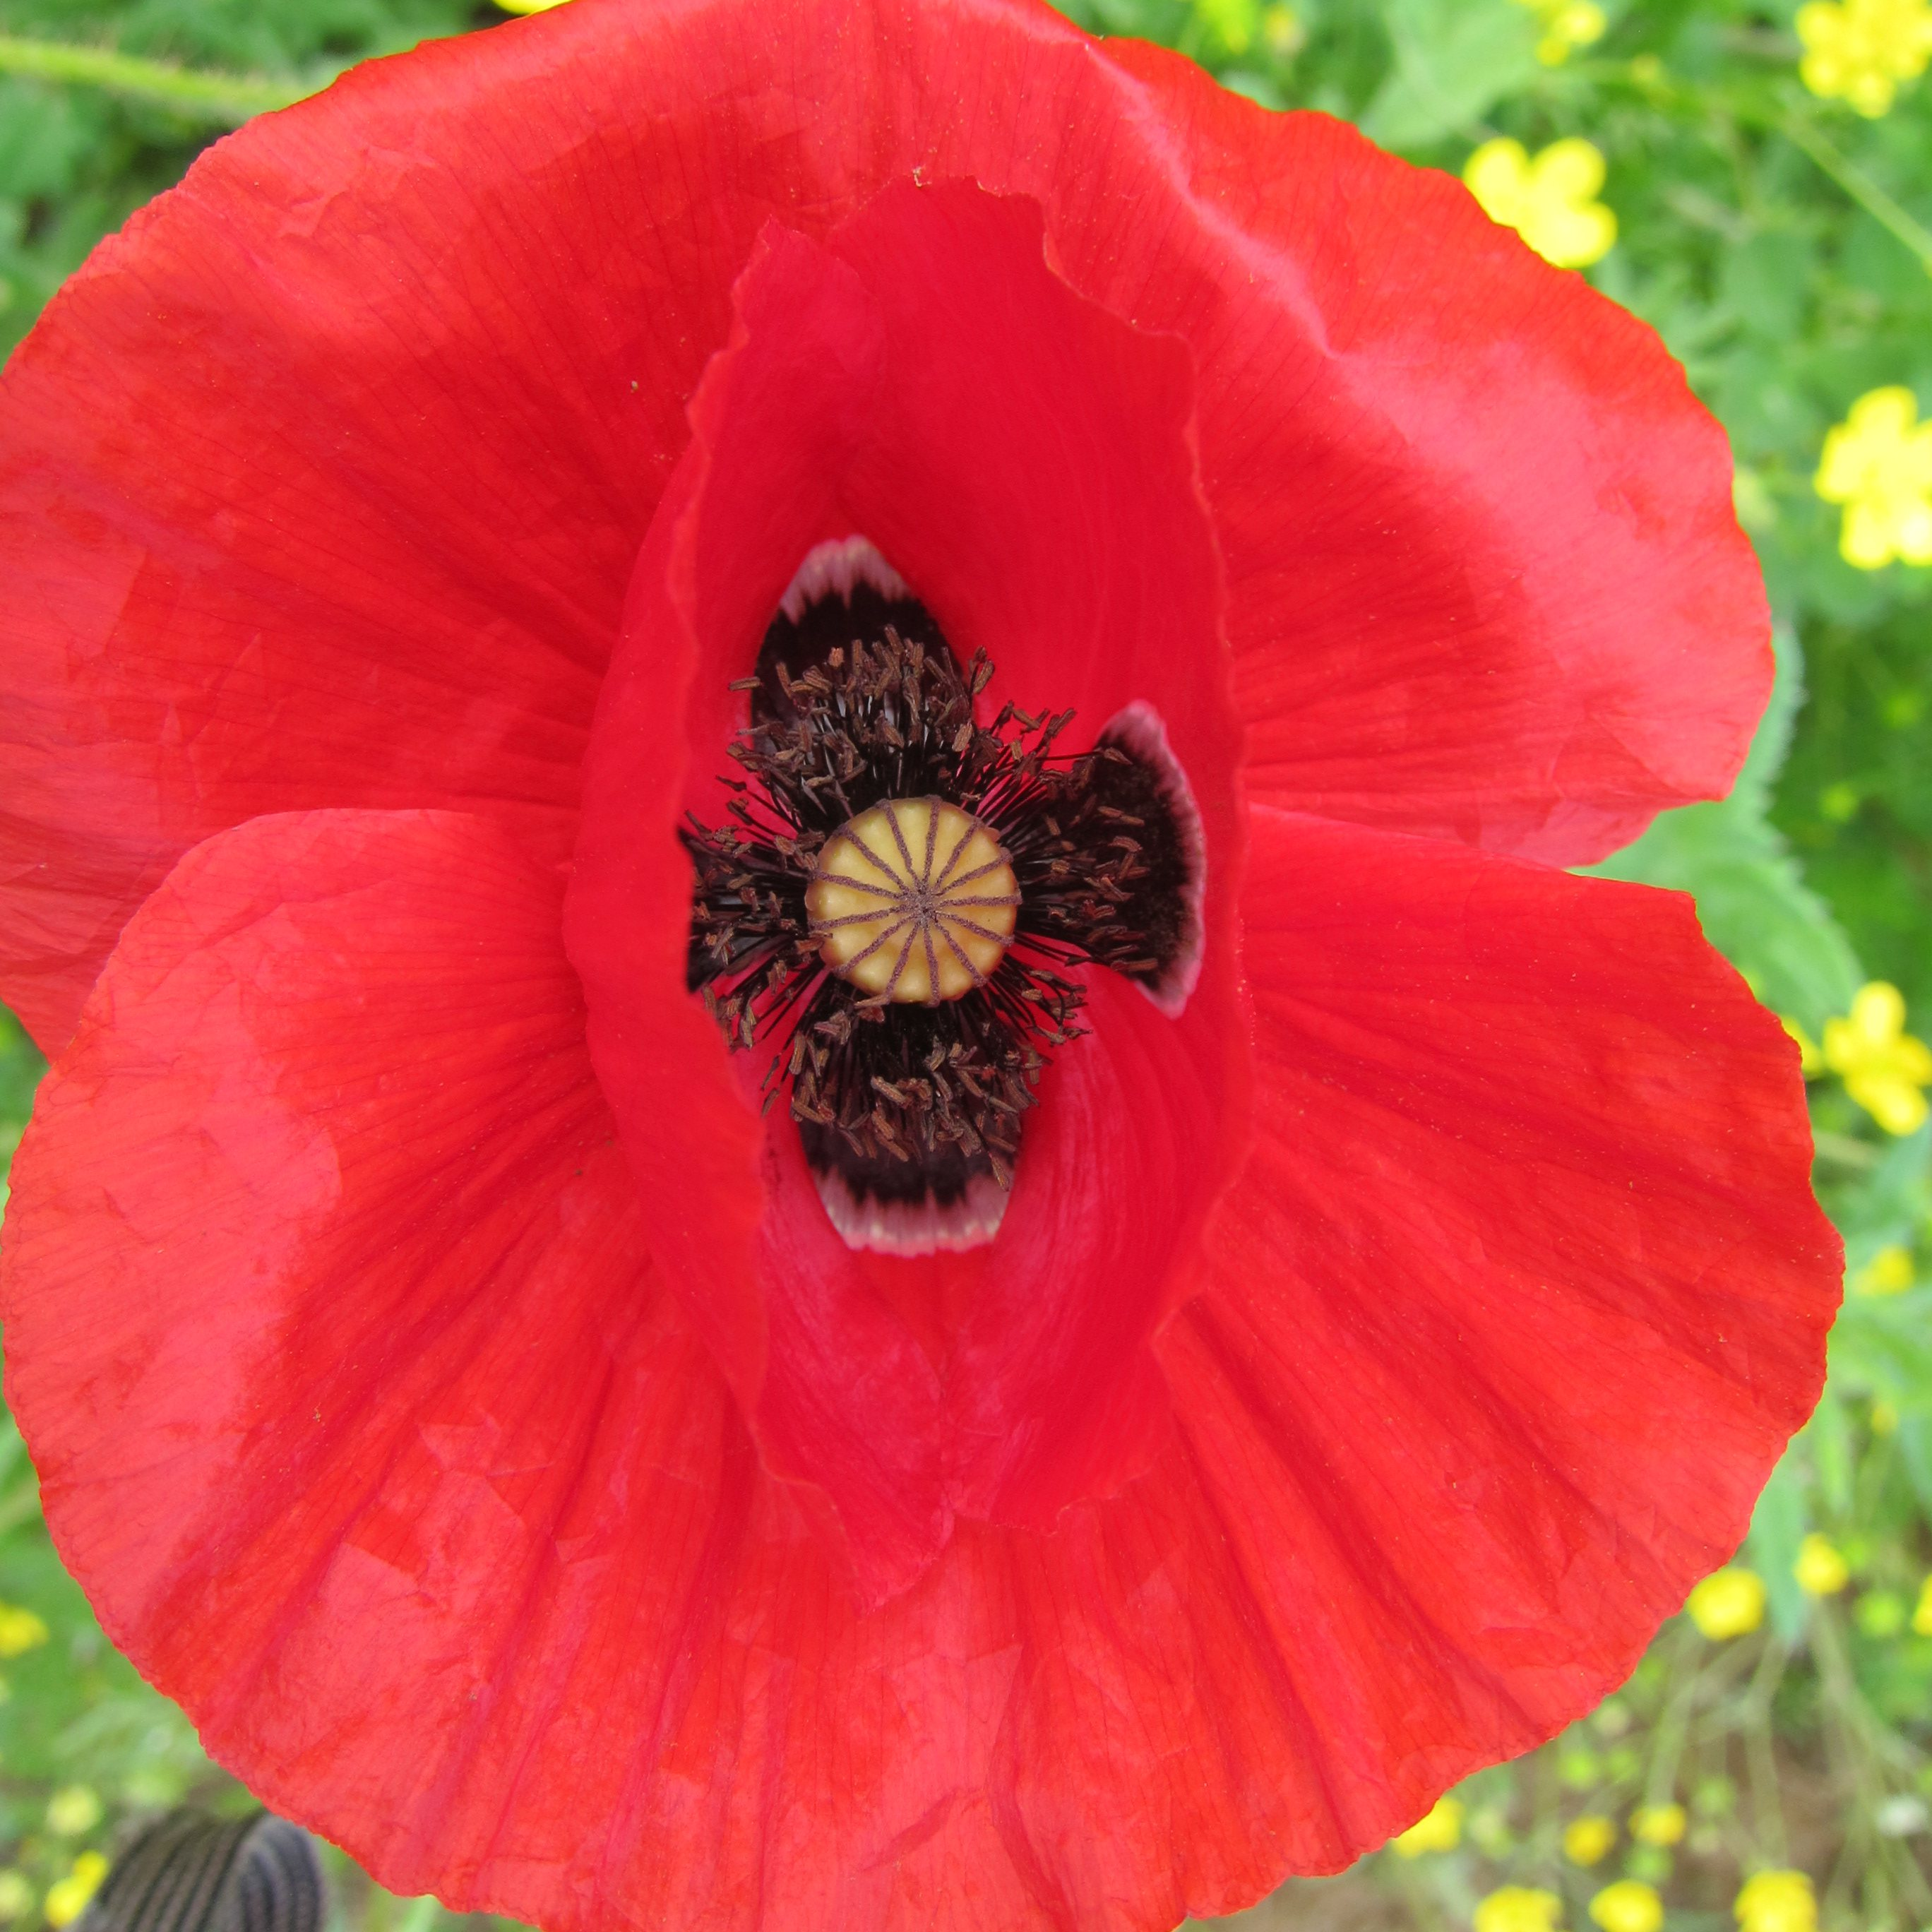 common poppy cultivation and wild collection